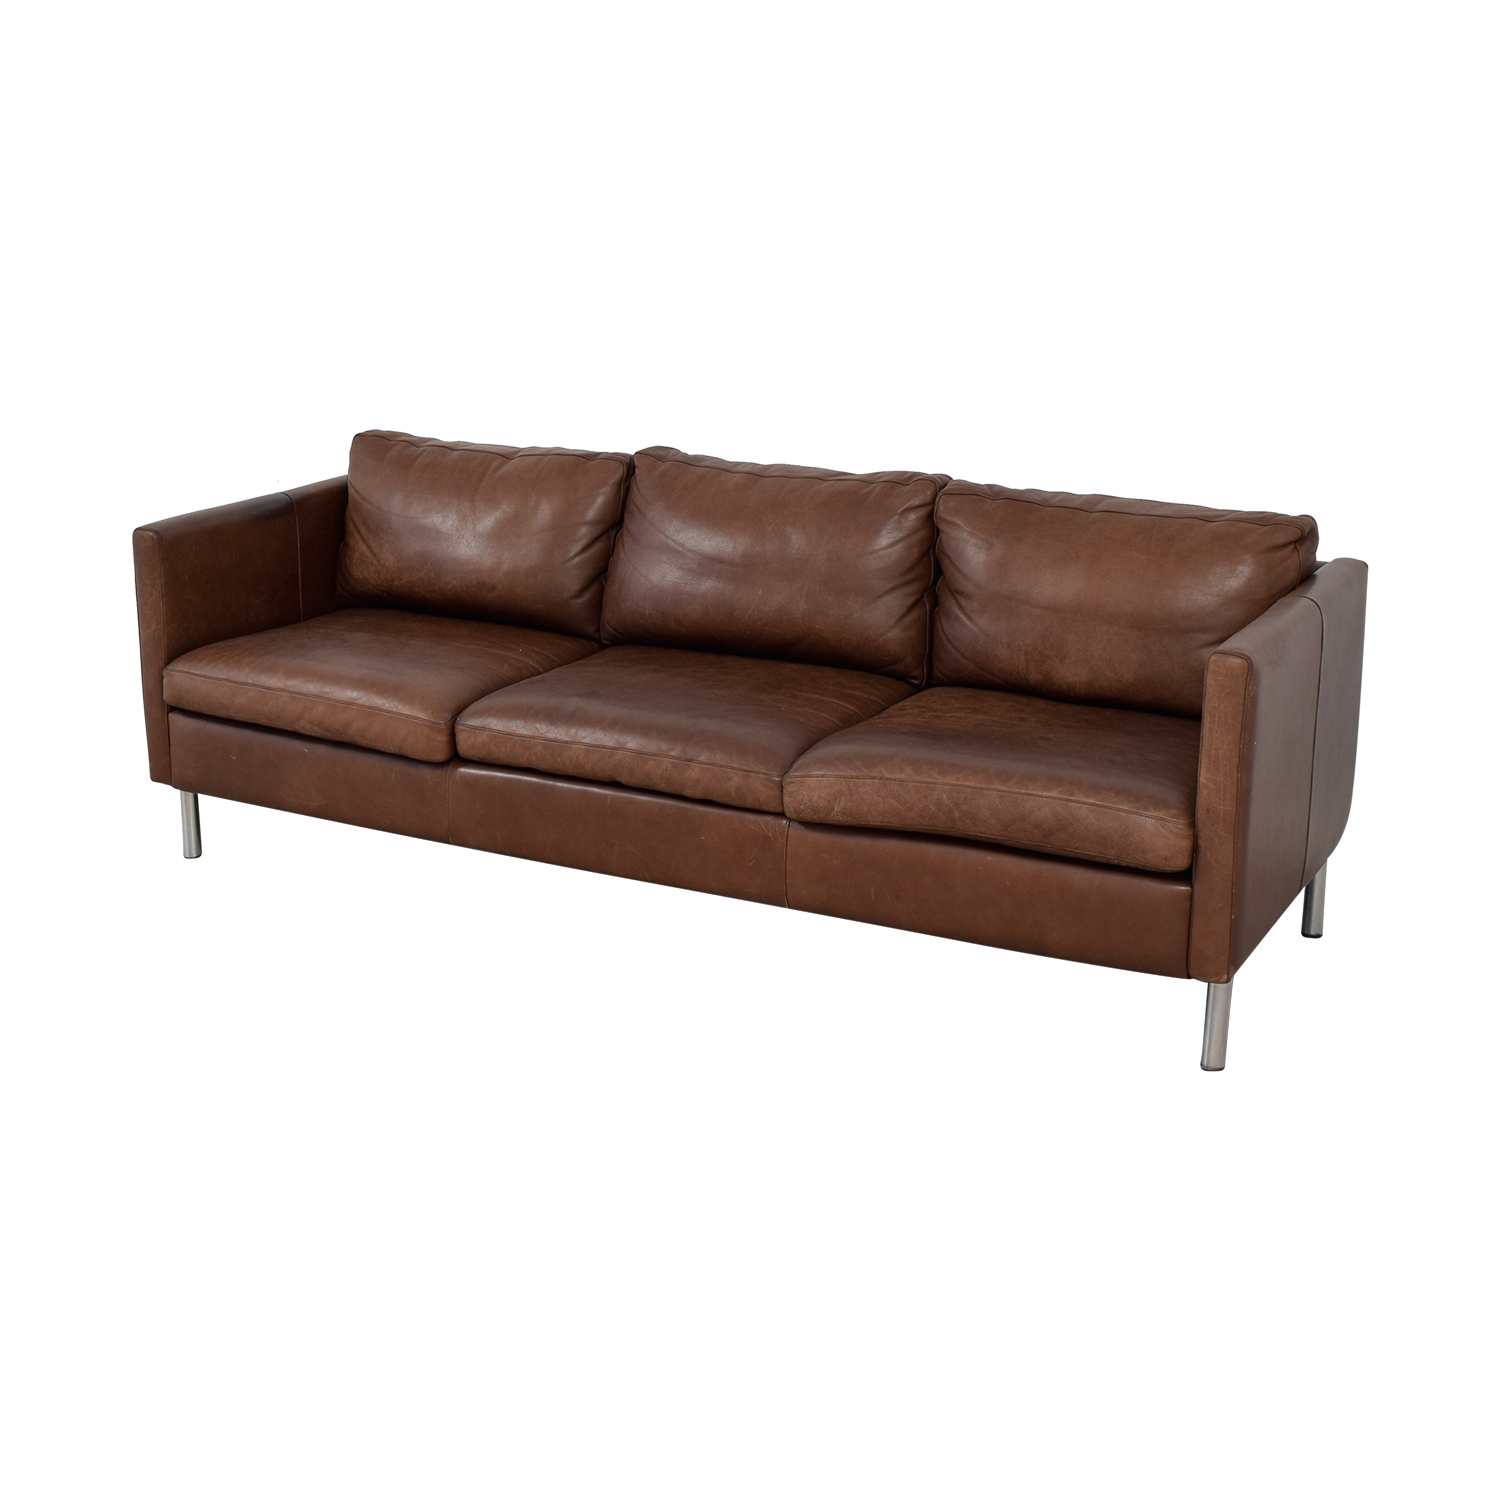 shop Room & Board Jackson Brown Leather Three-Cushion Sofa Room & Board Sofas